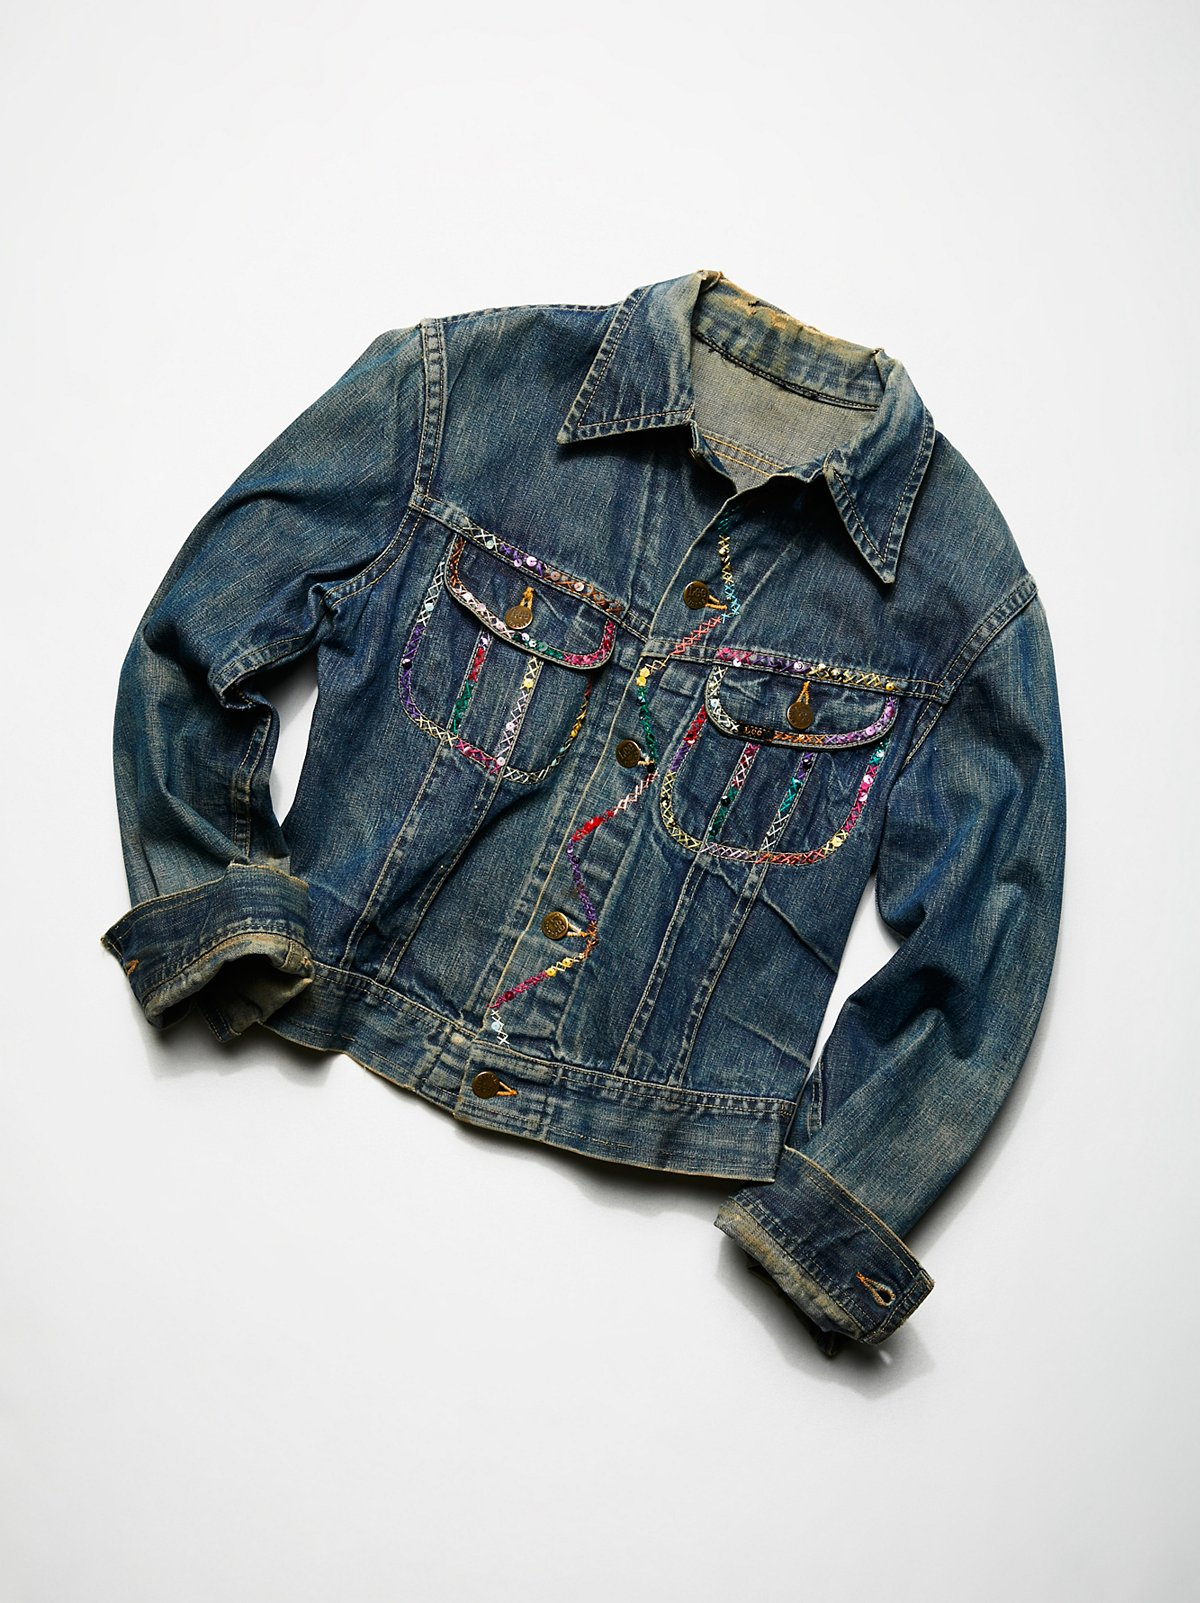 Vintage 1980s Embroidered Denim Jacket